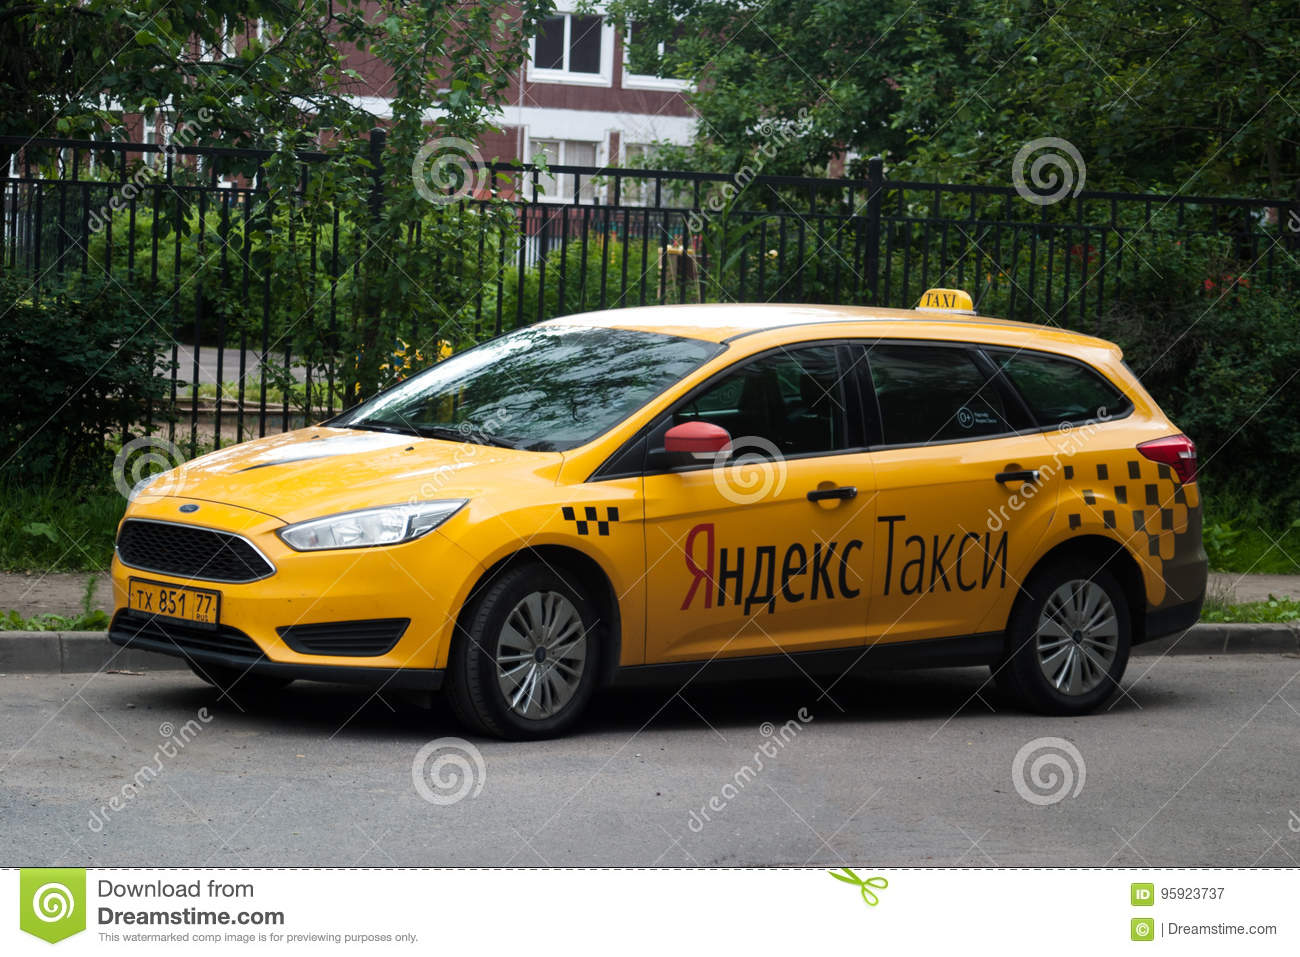 Saint Petersburg, Russia - July 08, 2017: Yellow Cab Company Yandex